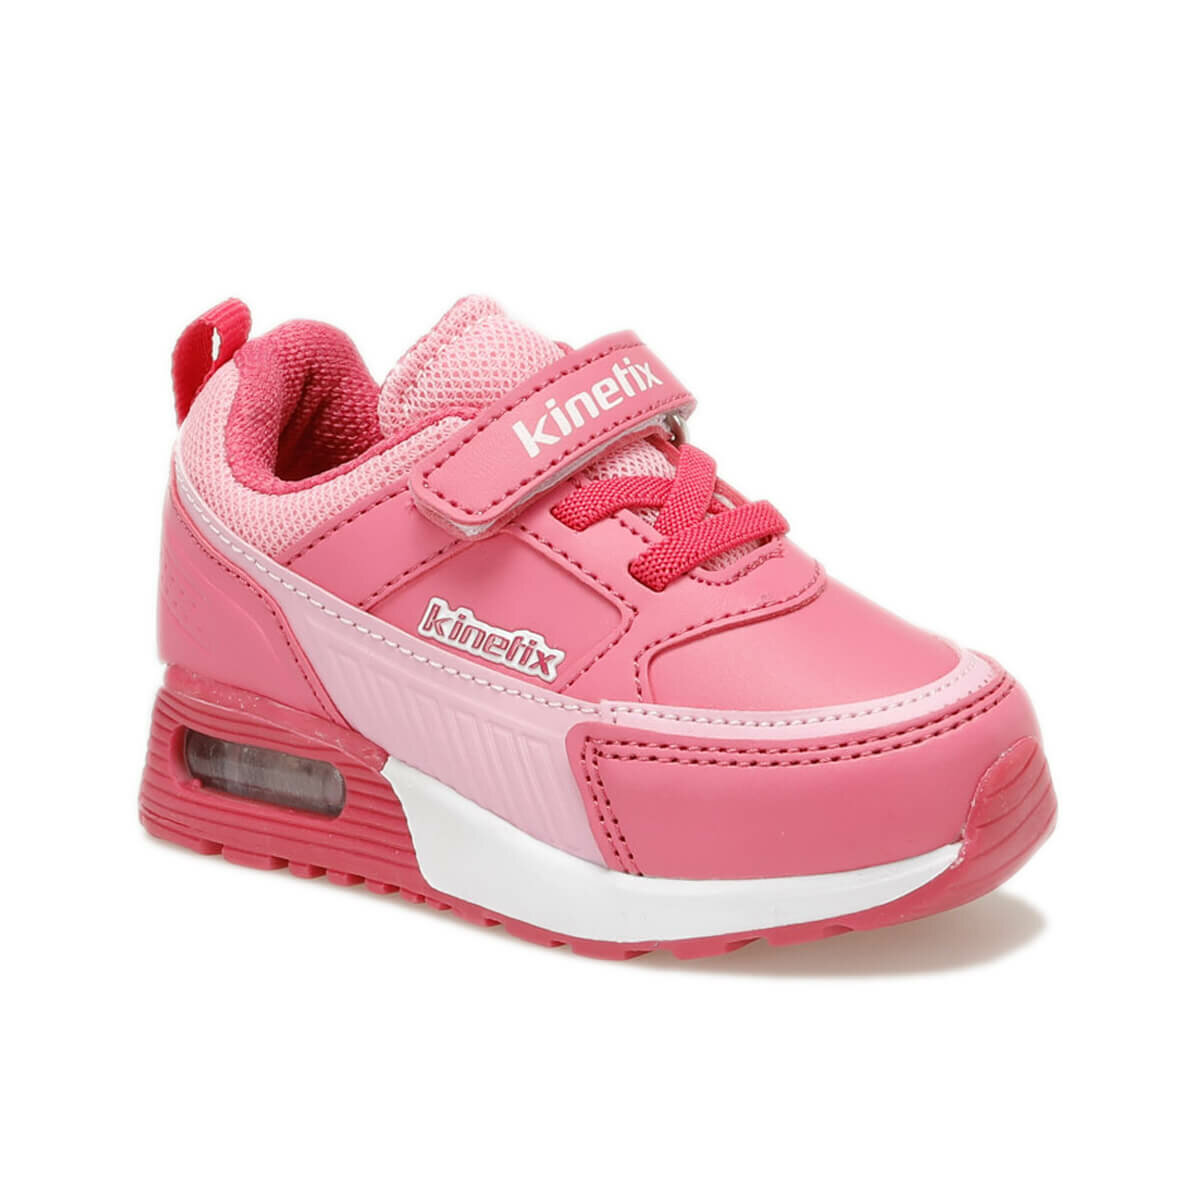 FLO HAZEL 9PR Pink Female Child Sneaker Shoes KINETIX